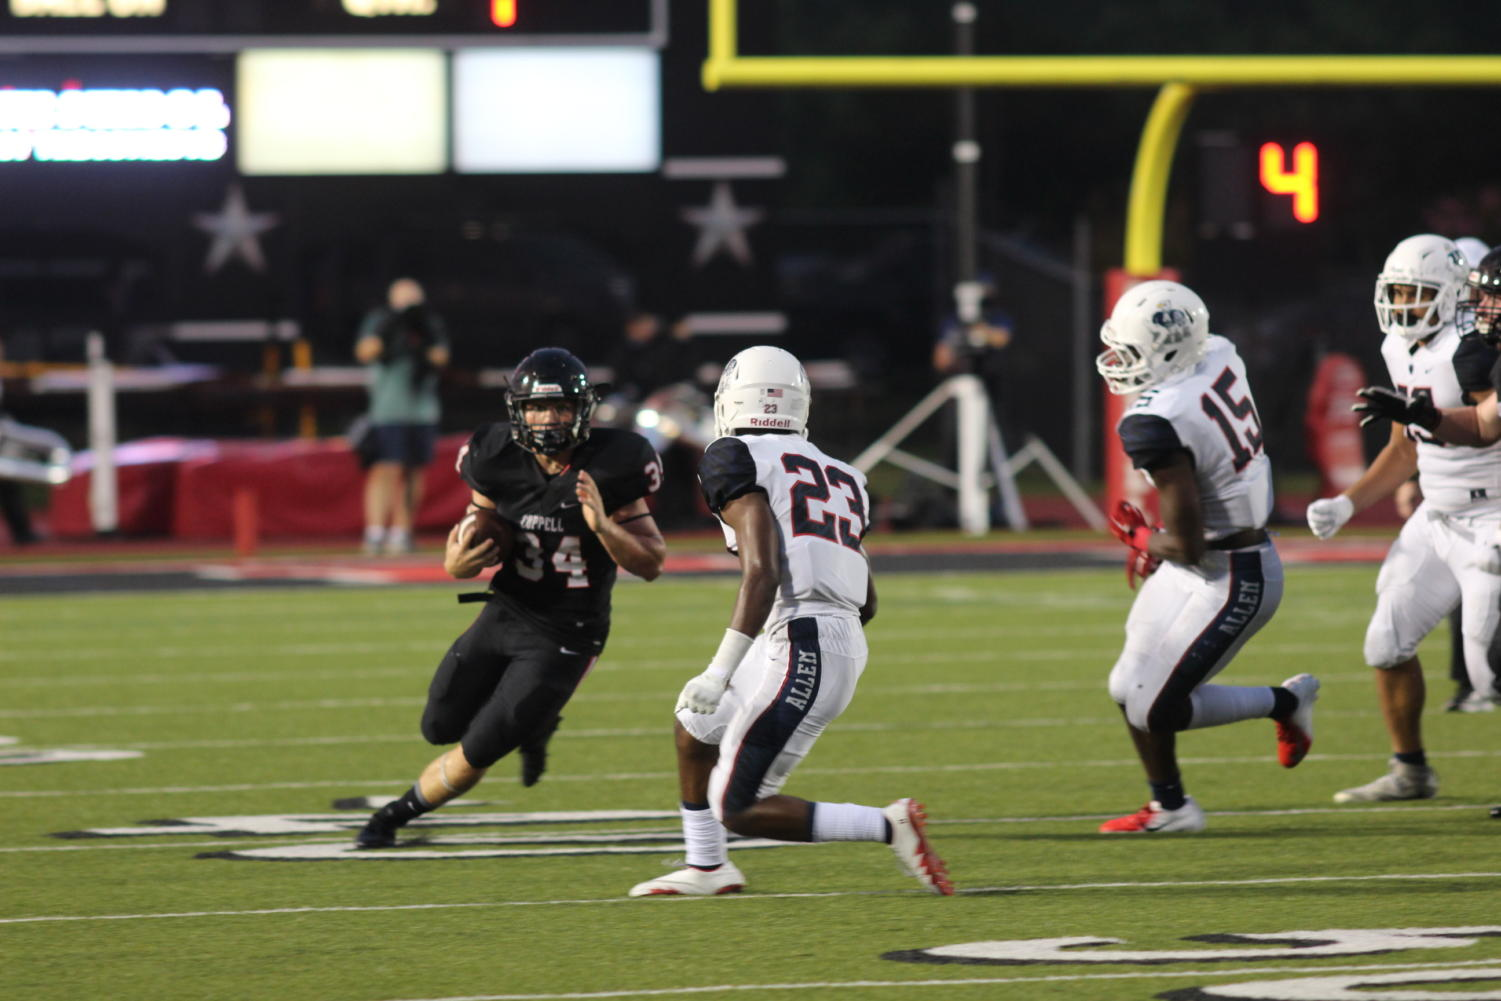 Coppell High School senior running back Ryan Hirt runs past Allen Eagles on an outside run at Buddy Echols Field on Sep. 20 The Cowboys lost to the Allen Eagles, 21-0.